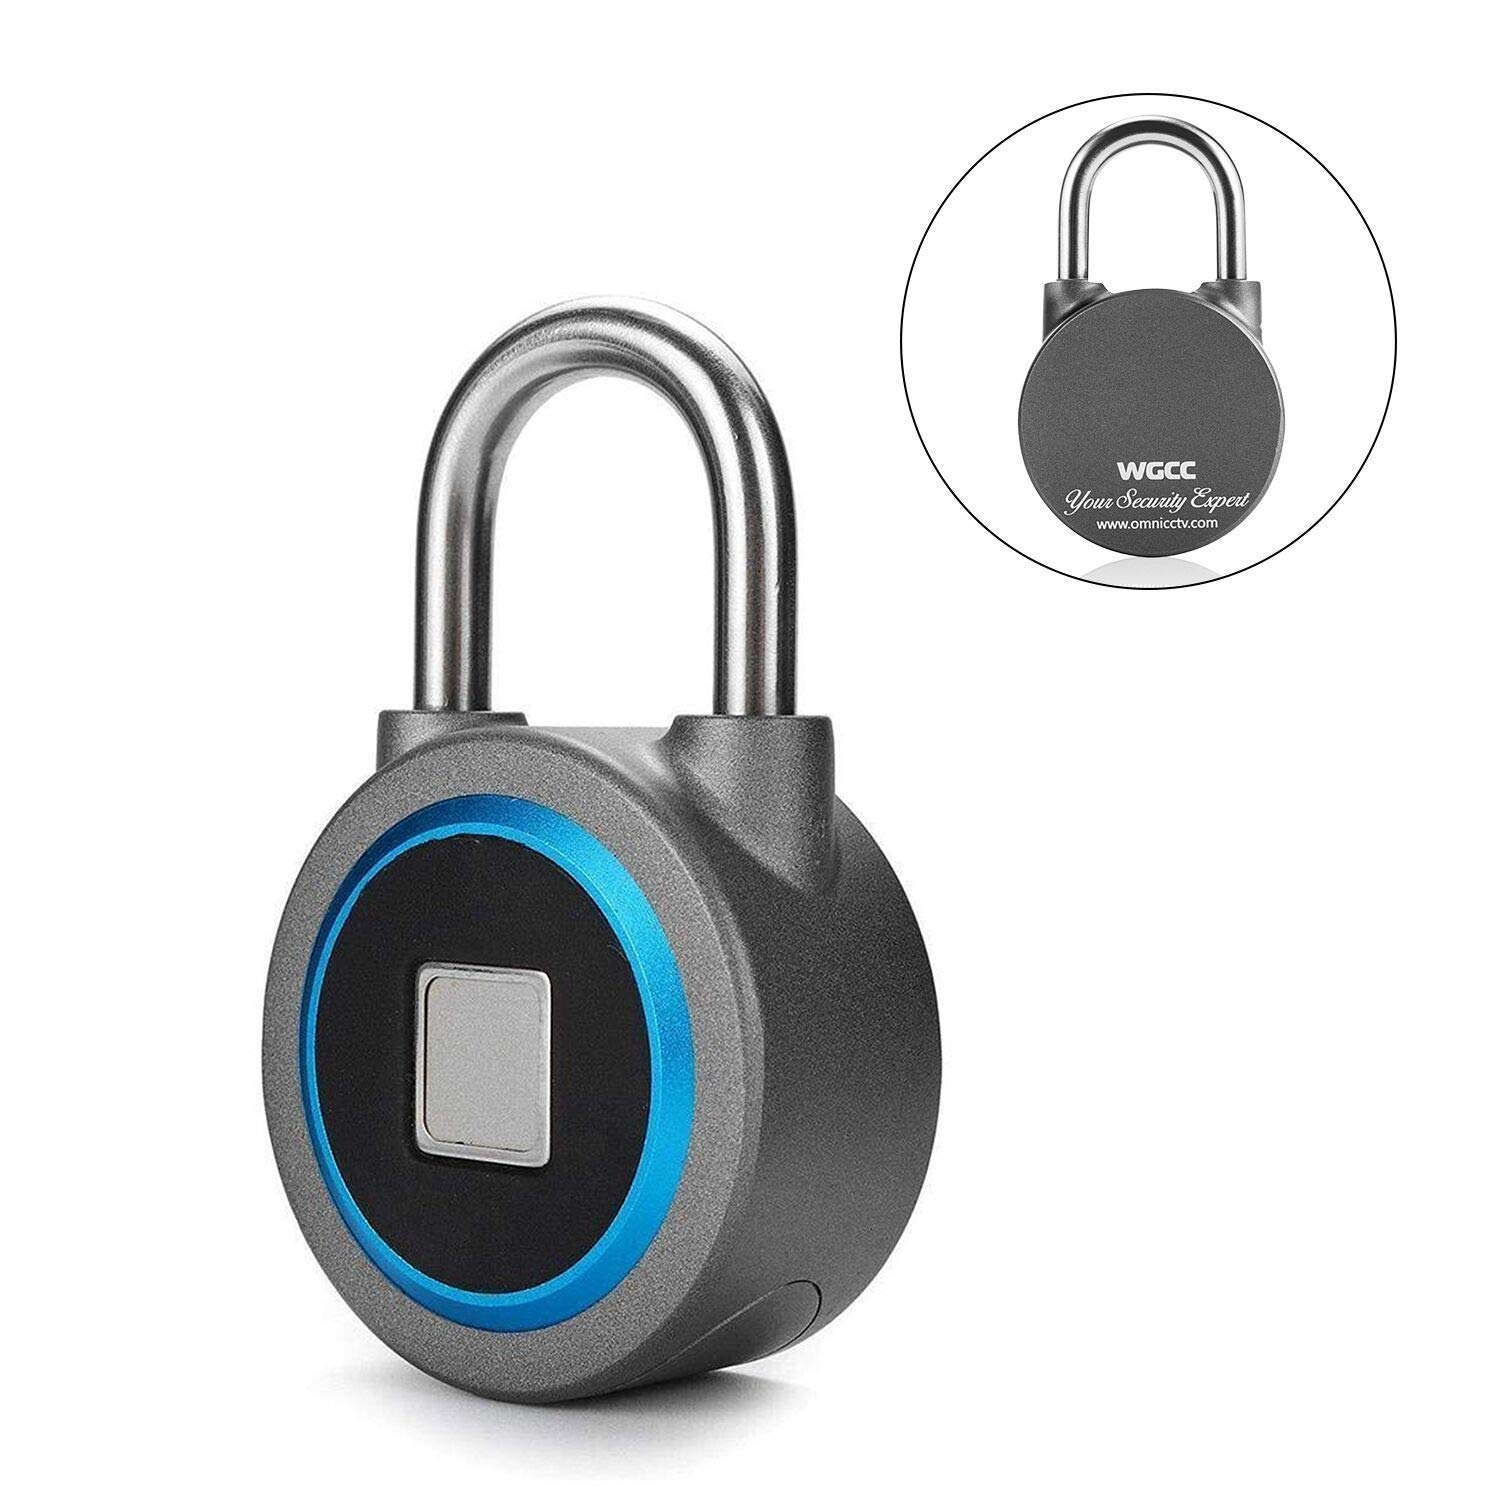 WGCC Fingerprint Padlock Review